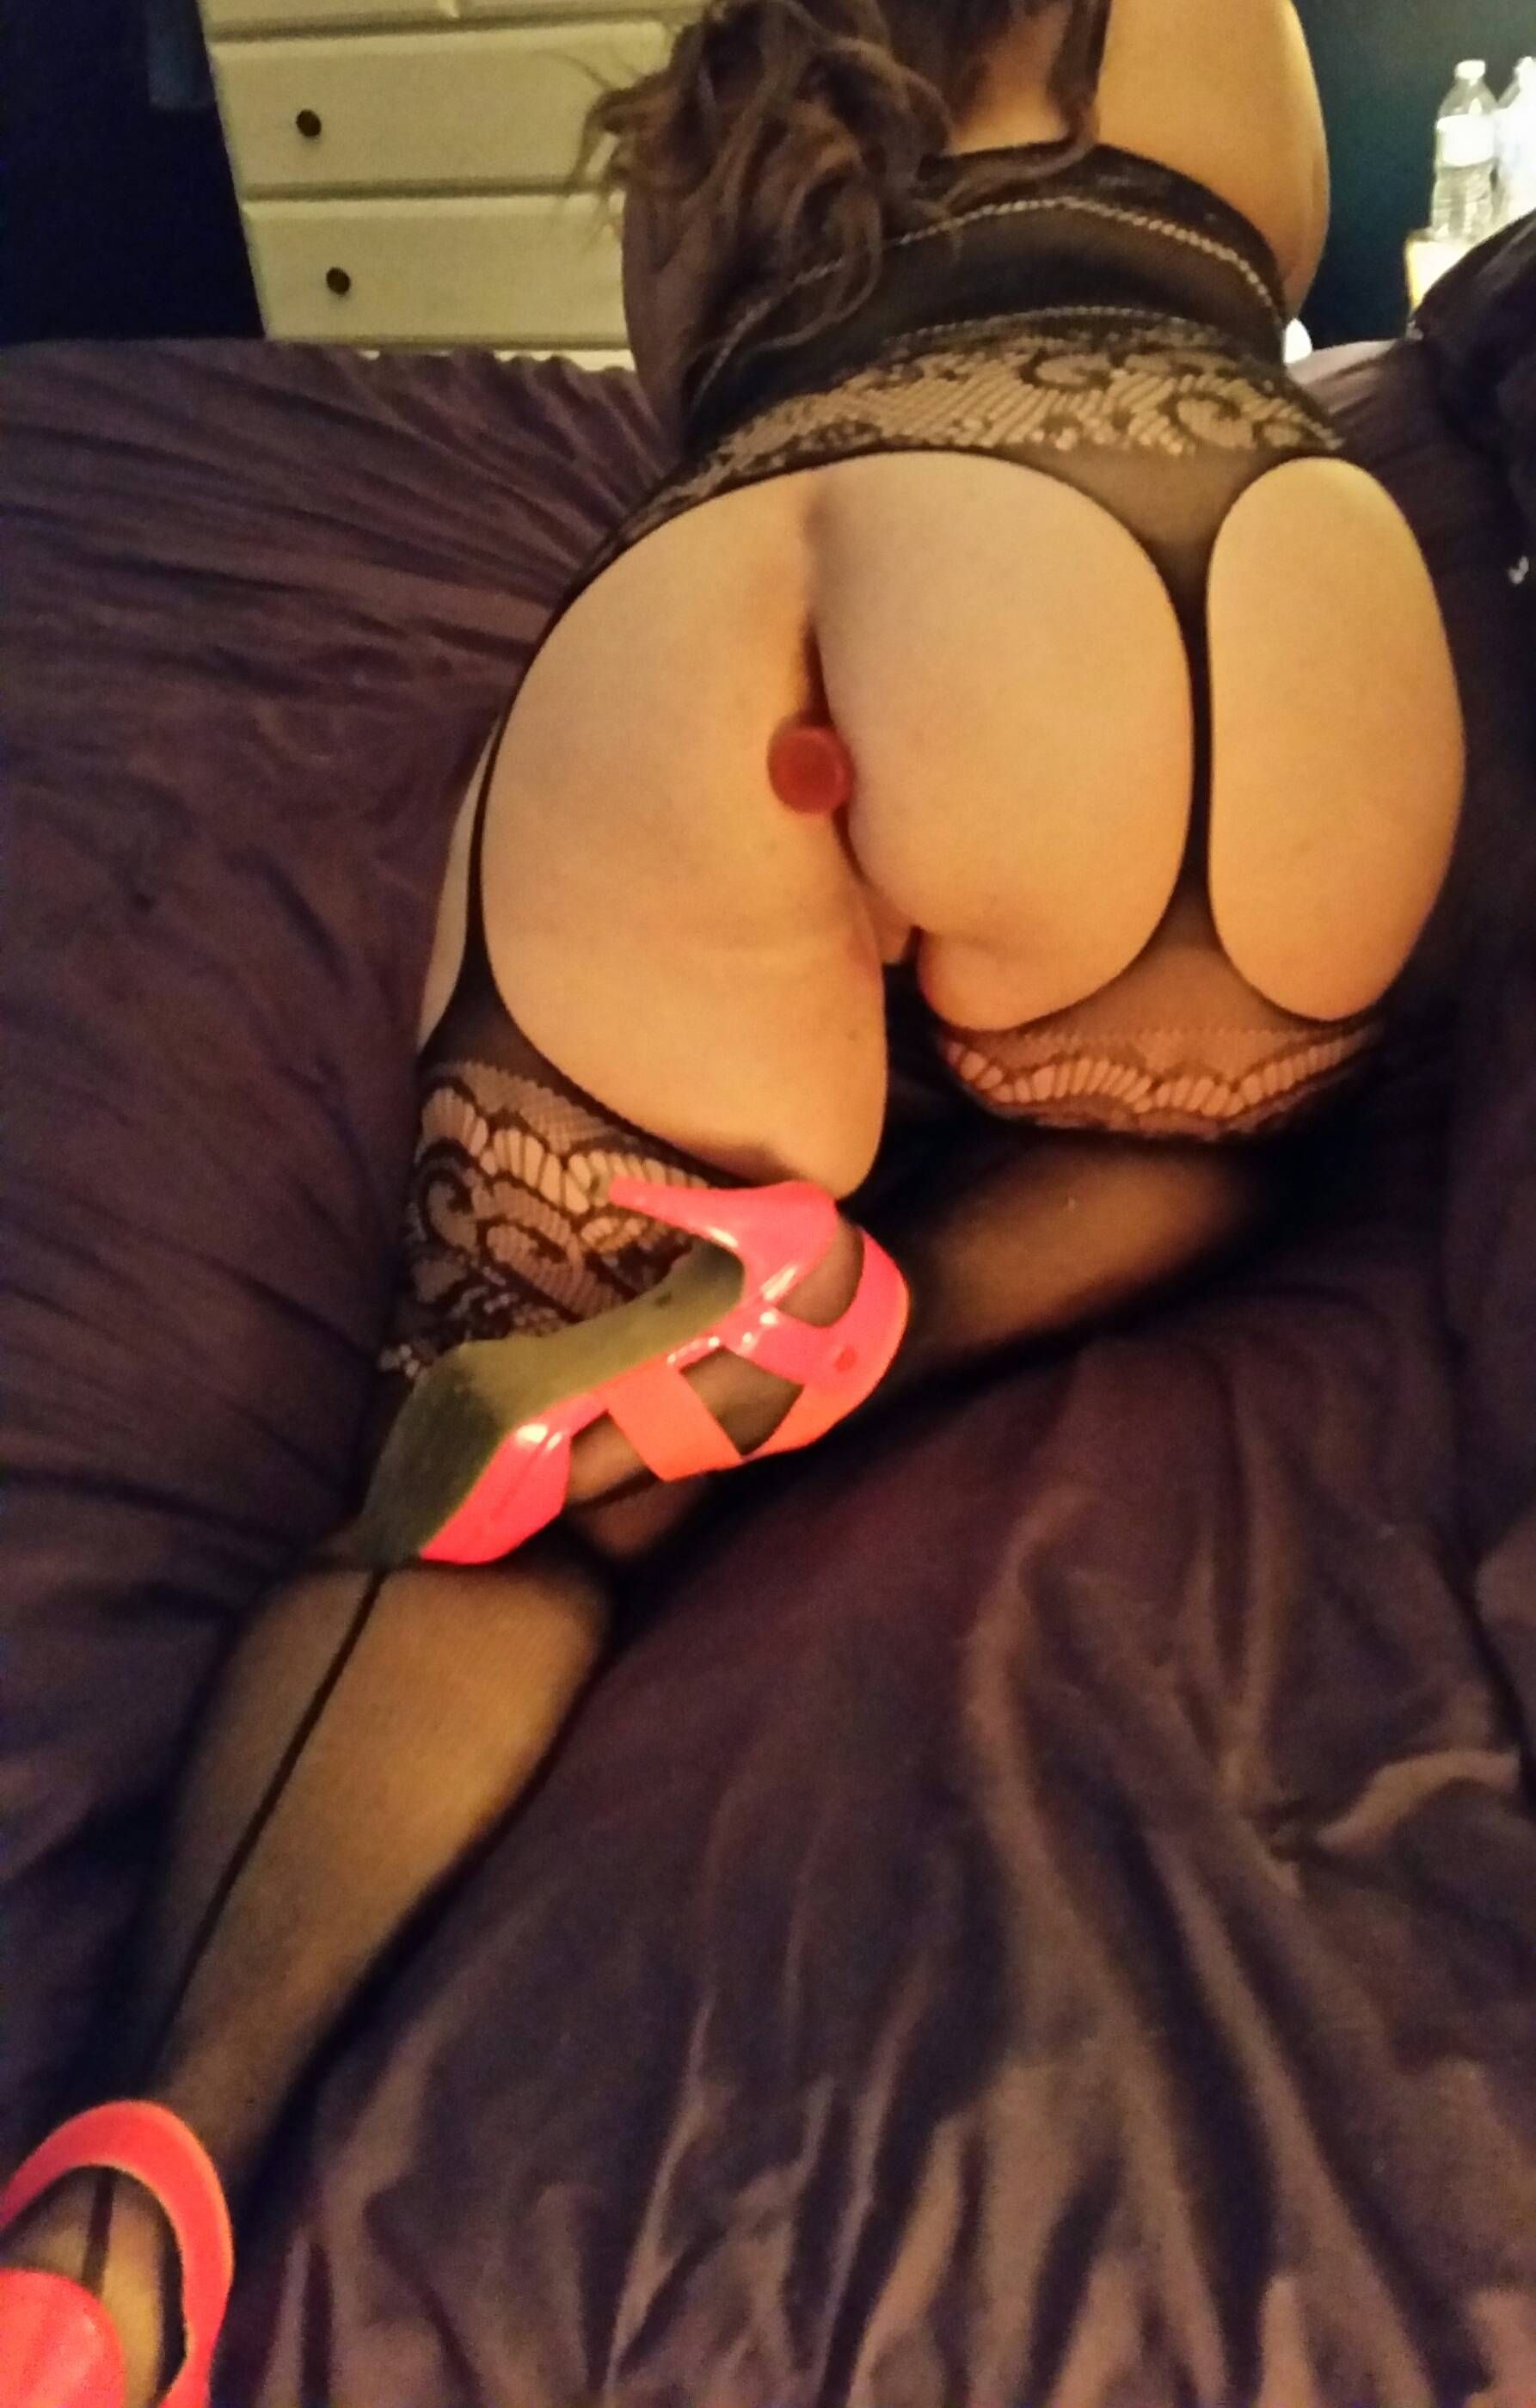 [Wife Porn Pic] A little ass play